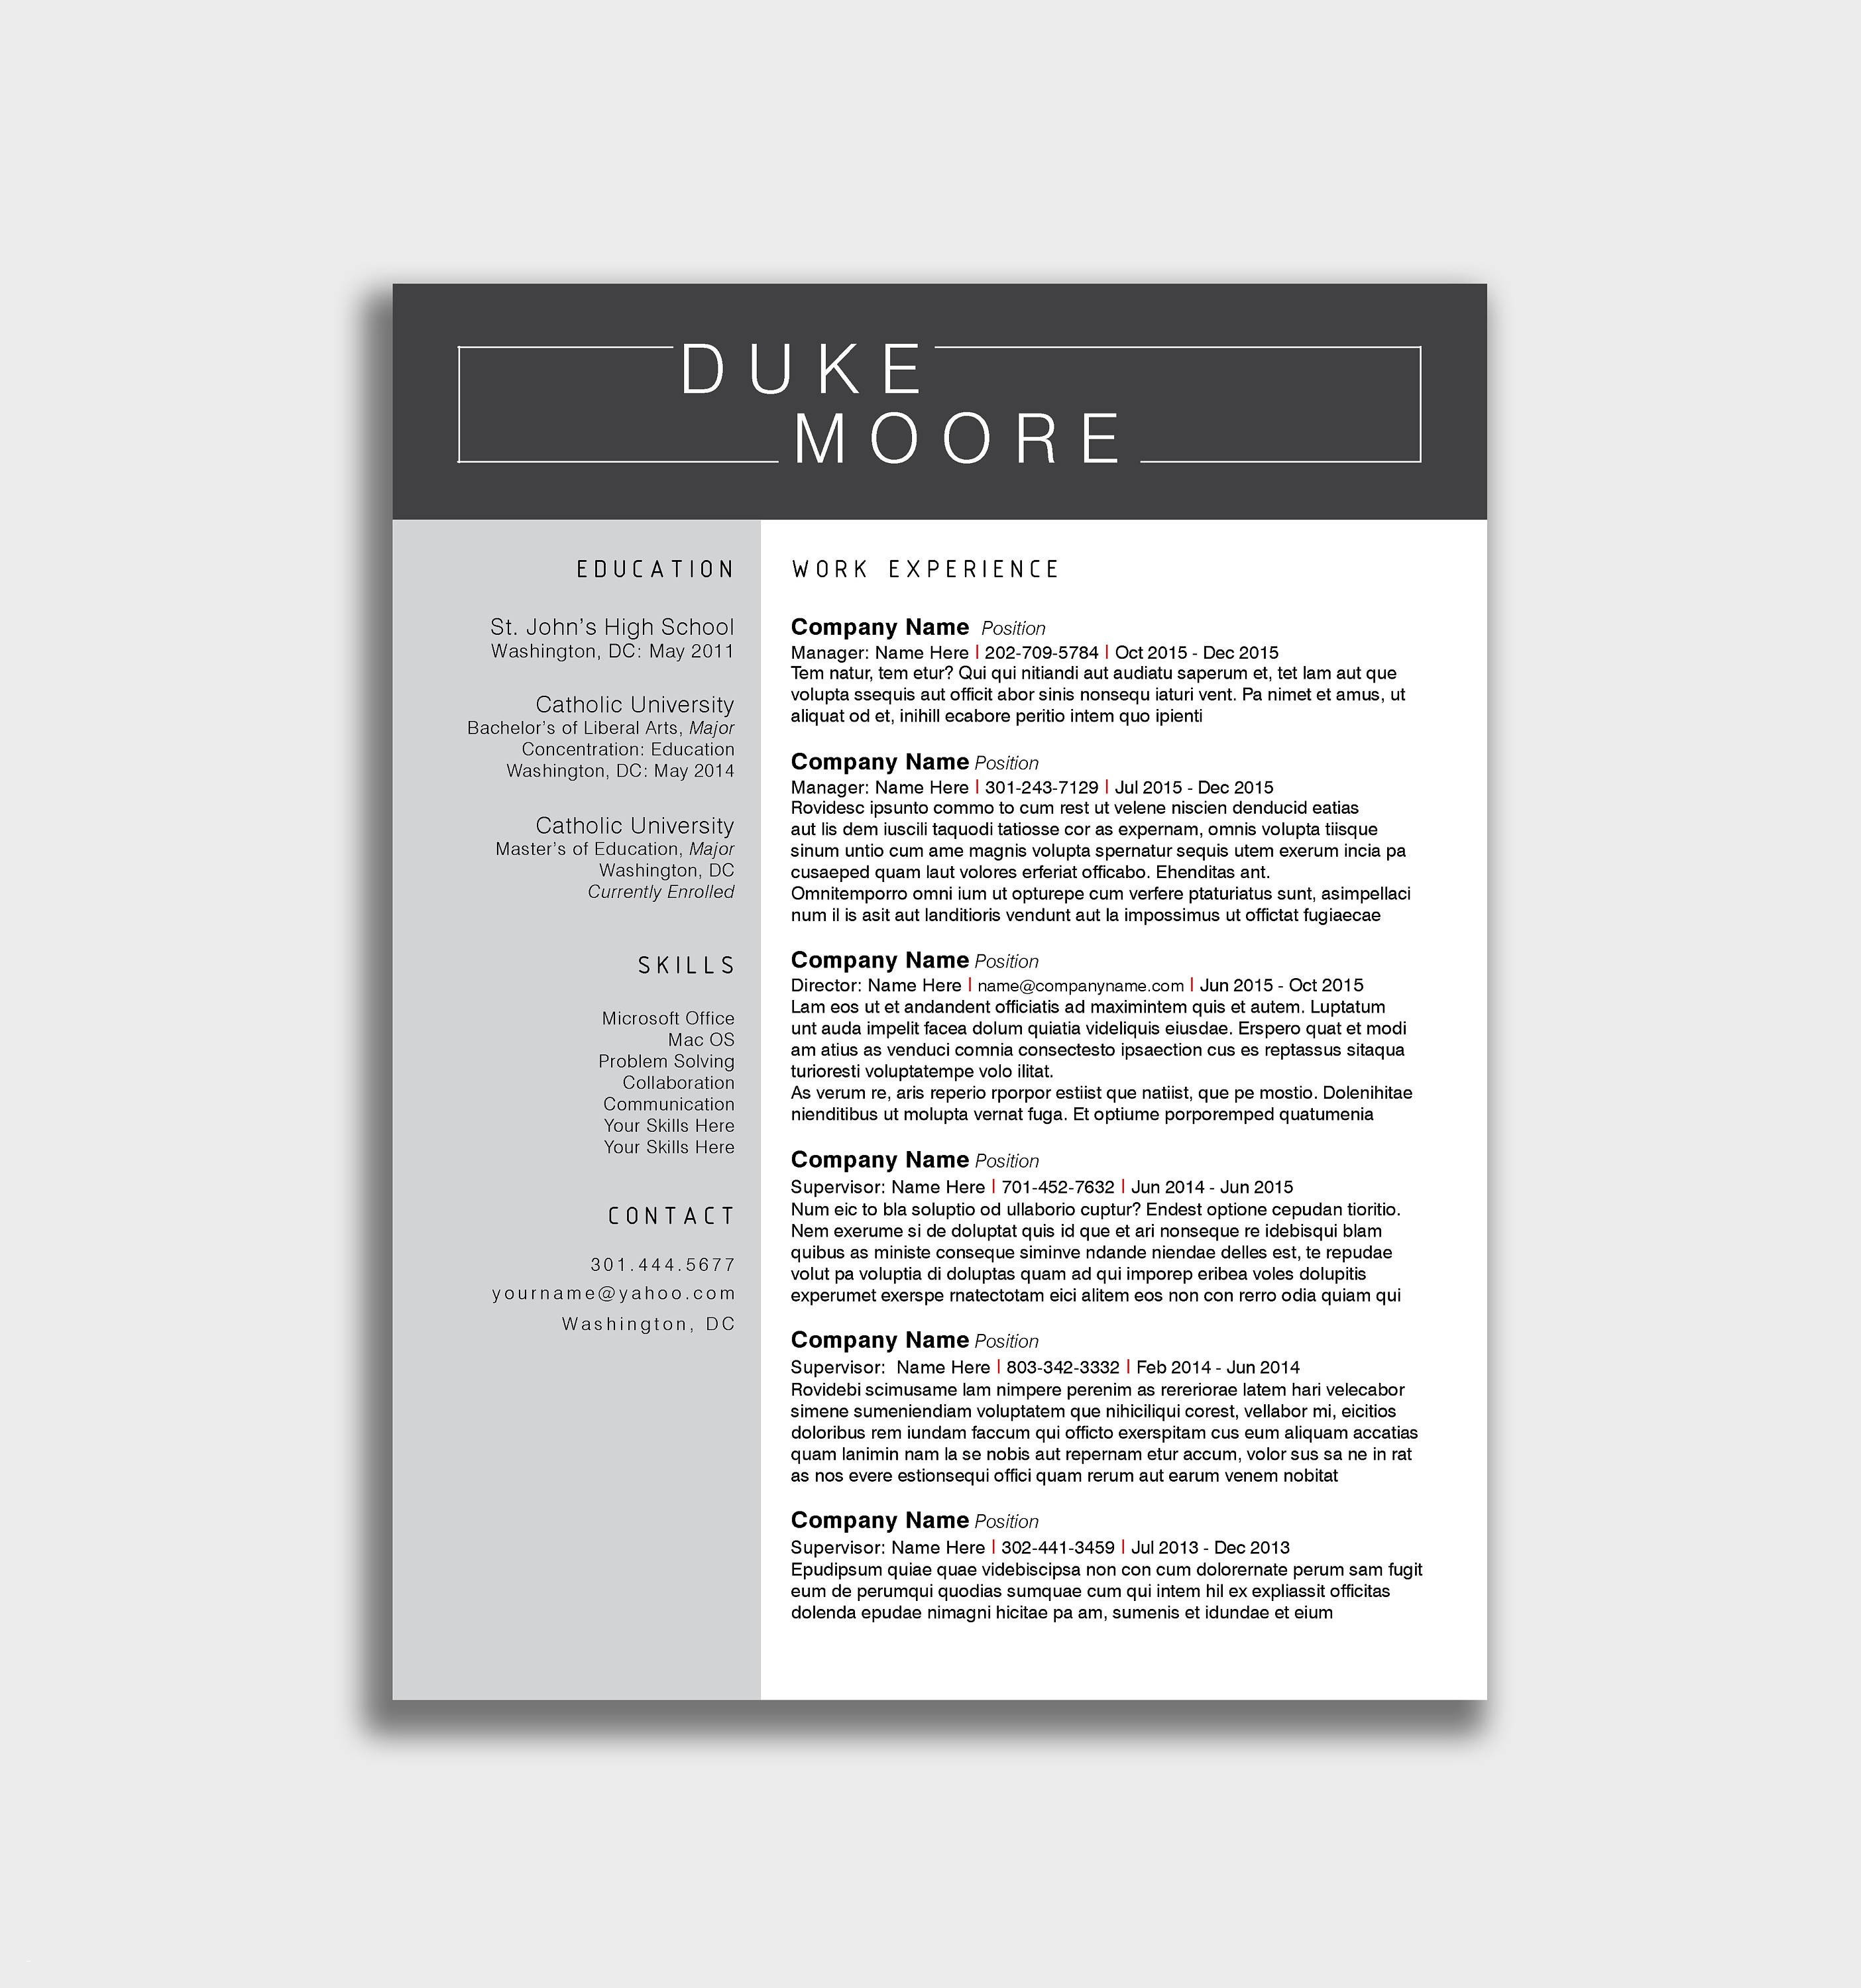 Ut Austin Resume - 52 Loveable Resume Templates for College Students Occupylondonsos